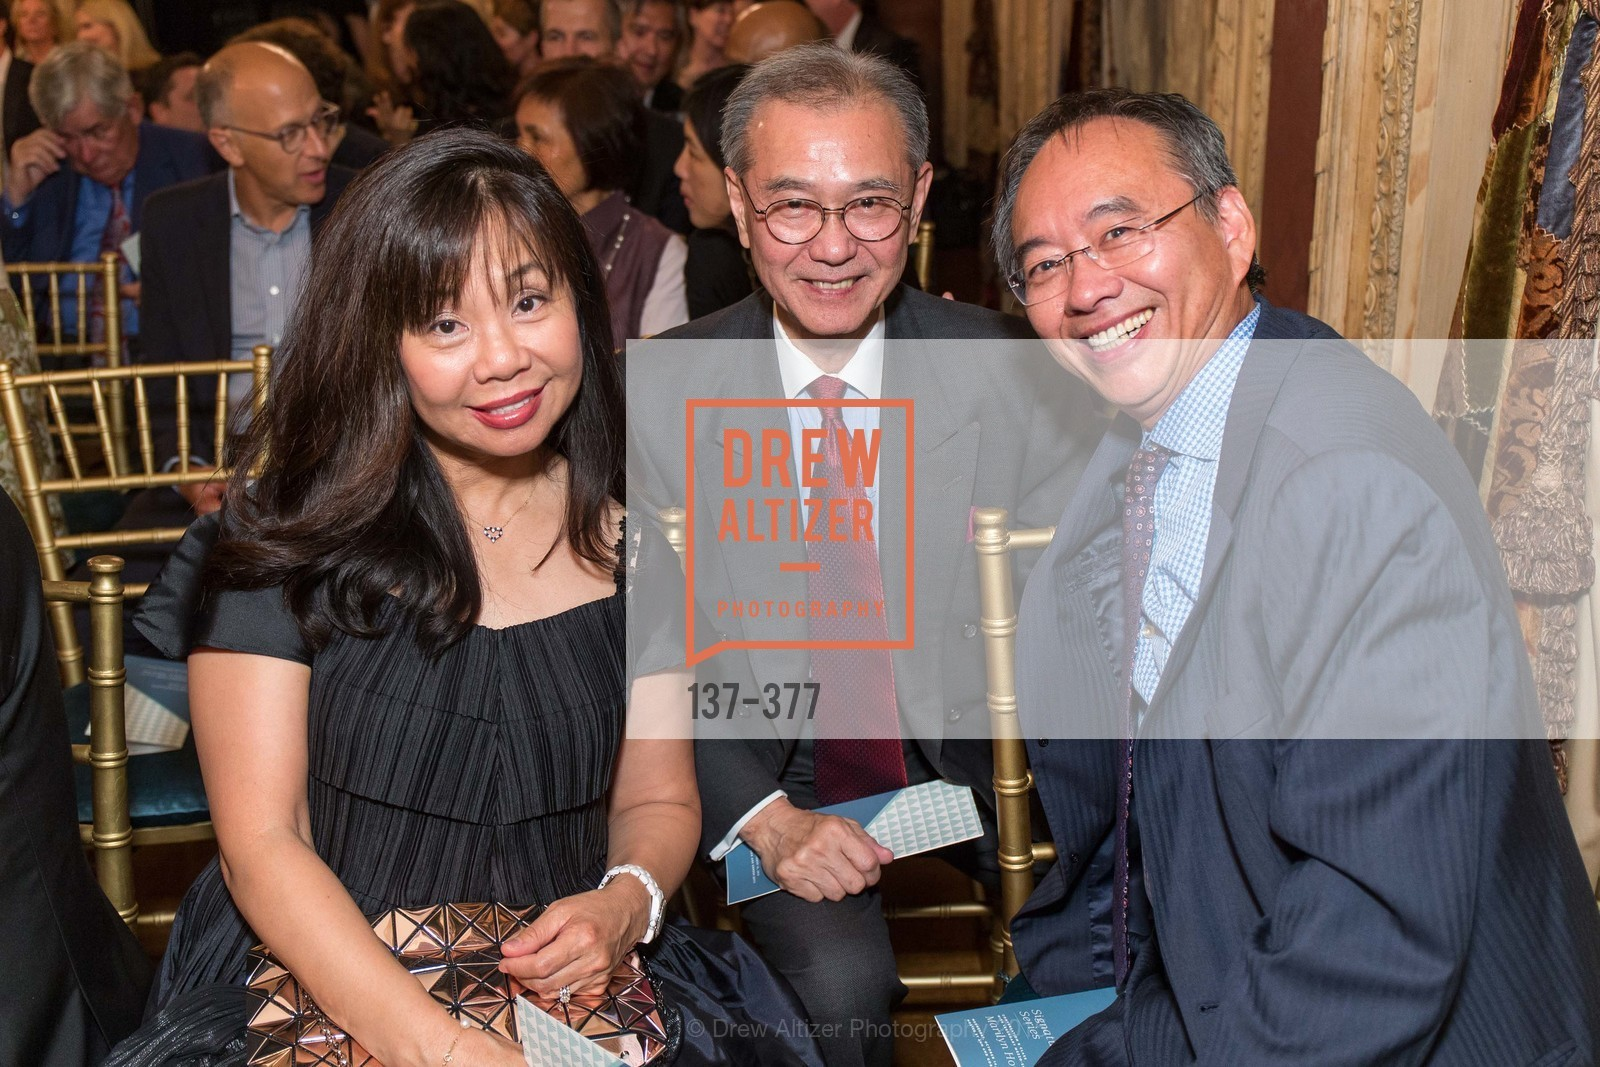 Rebbeca-Sen Chan, Tim Foo, Chi-Foon Chan, Ann and Gordon Getty Host SF Conservatory of Music with Marilyn Horne, Private Residence, October 15th, 2015,Drew Altizer, Drew Altizer Photography, full-service agency, private events, San Francisco photographer, photographer california